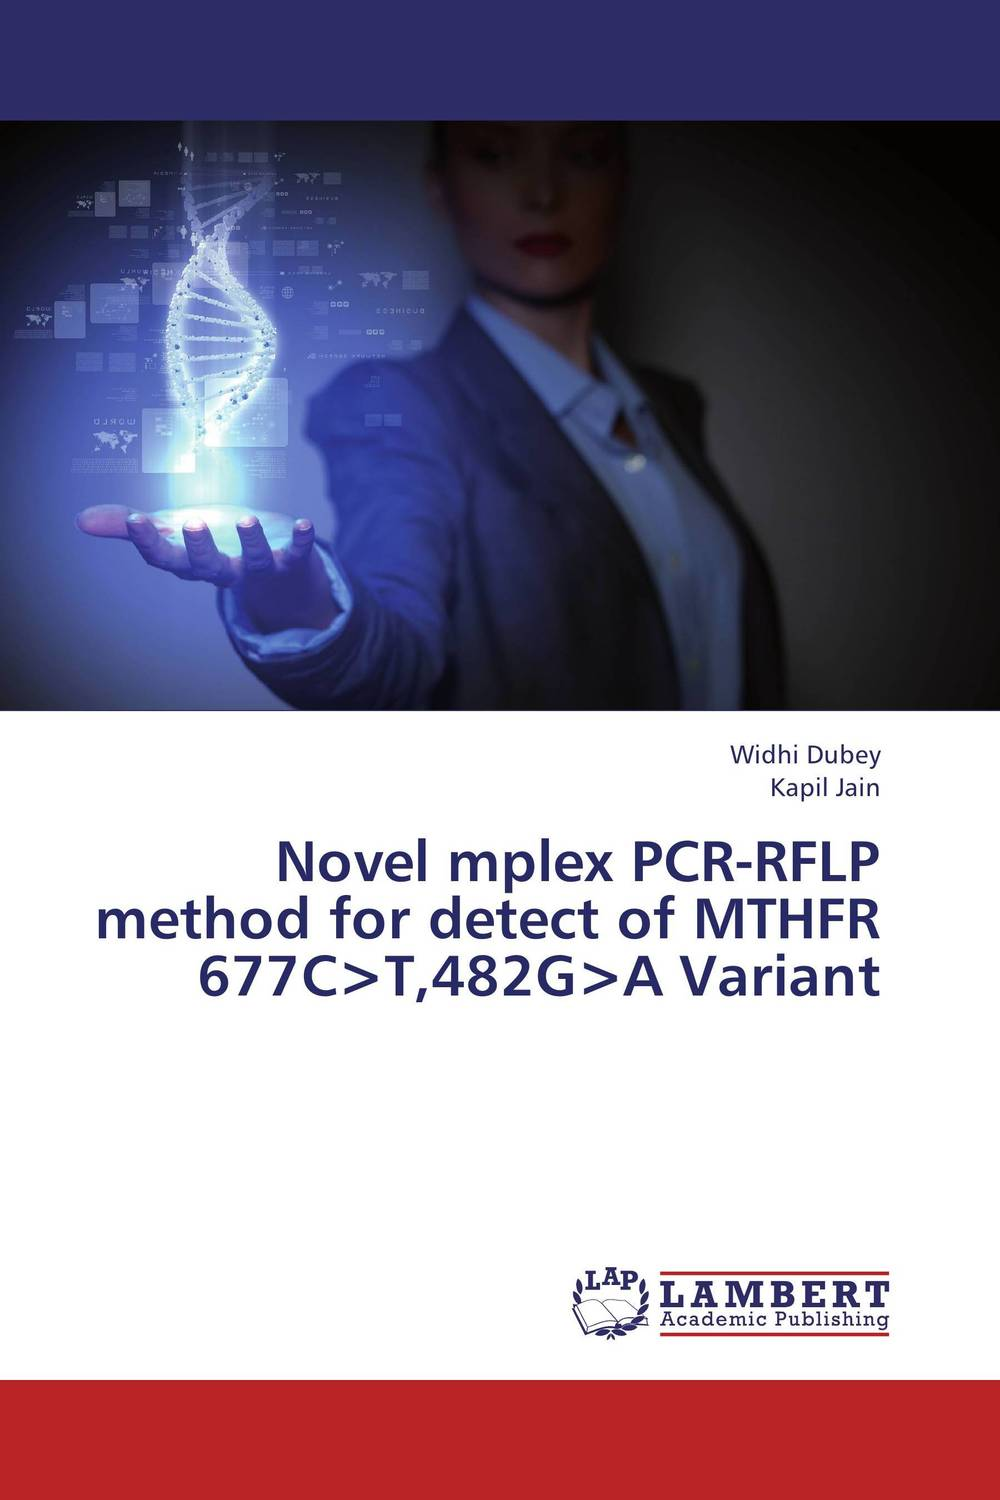 Novel mplex PCR-RFLP method for detect of MTHFR 677C>T,482G>A Variant the lonely polygamist – a novel